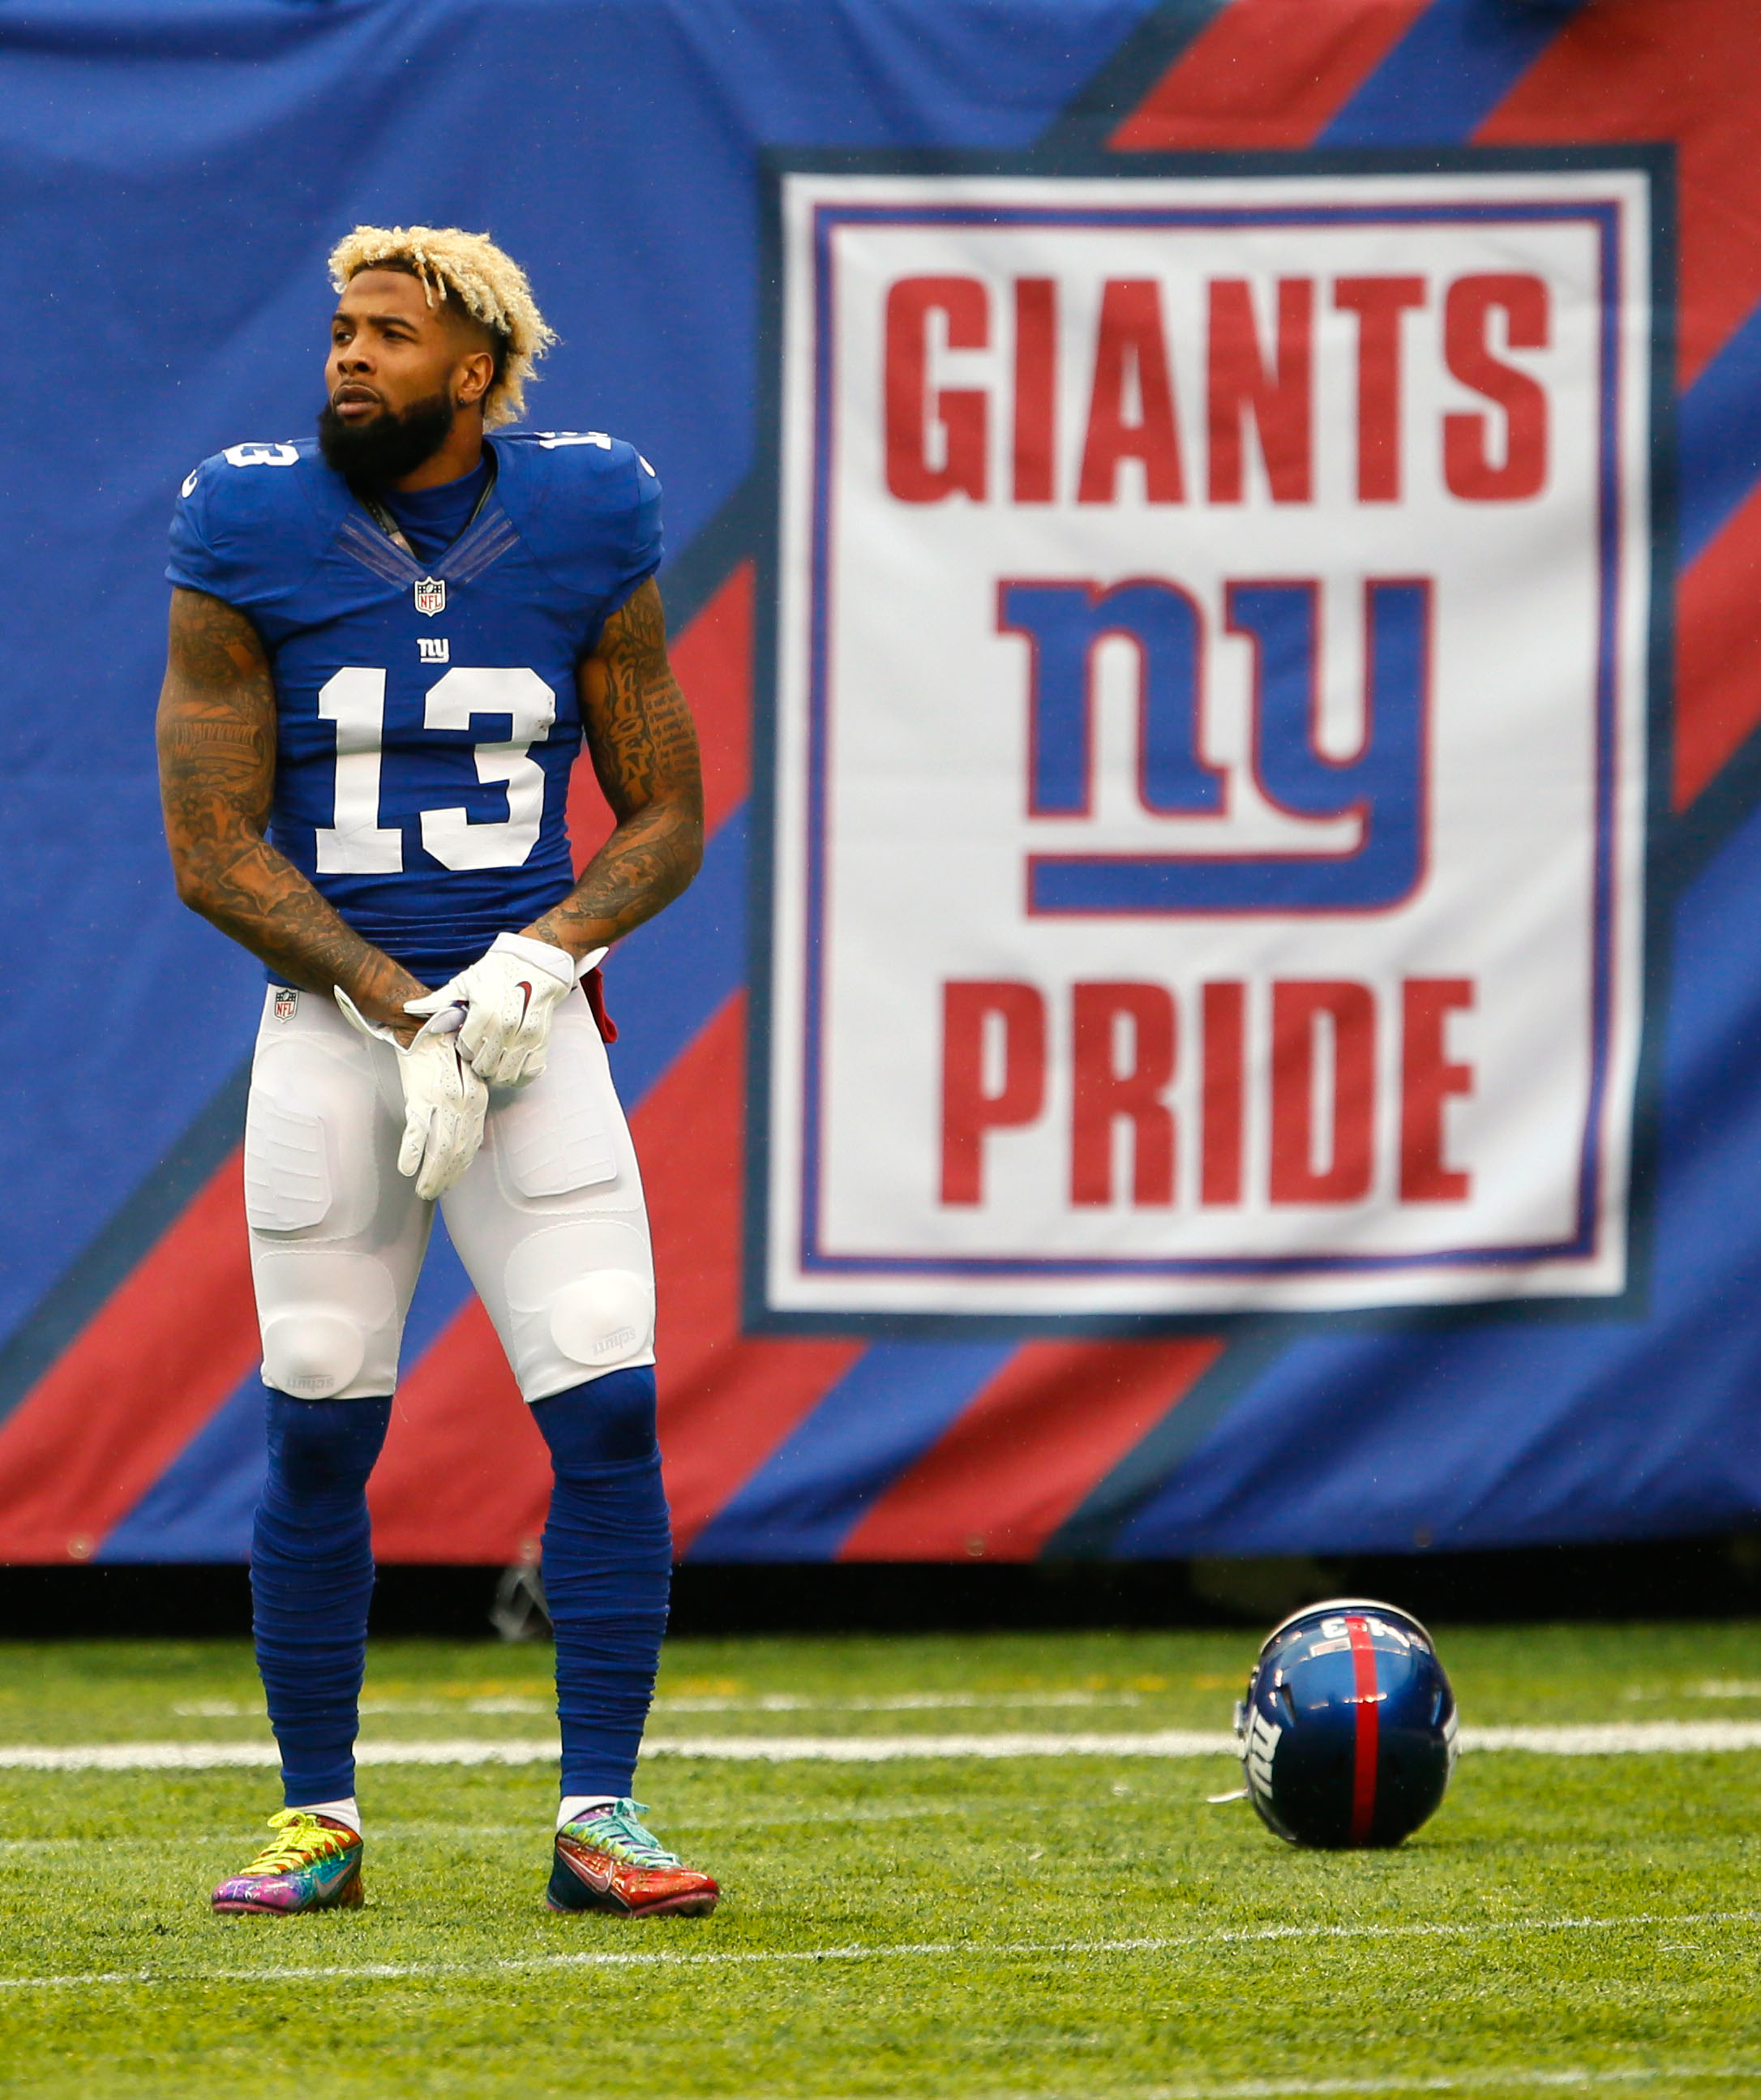 New york giants rumors news pro football rumors beckham who suffered a season ending ankle injury last year had received clearance to participate in giants work outs earlier this week m4hsunfo